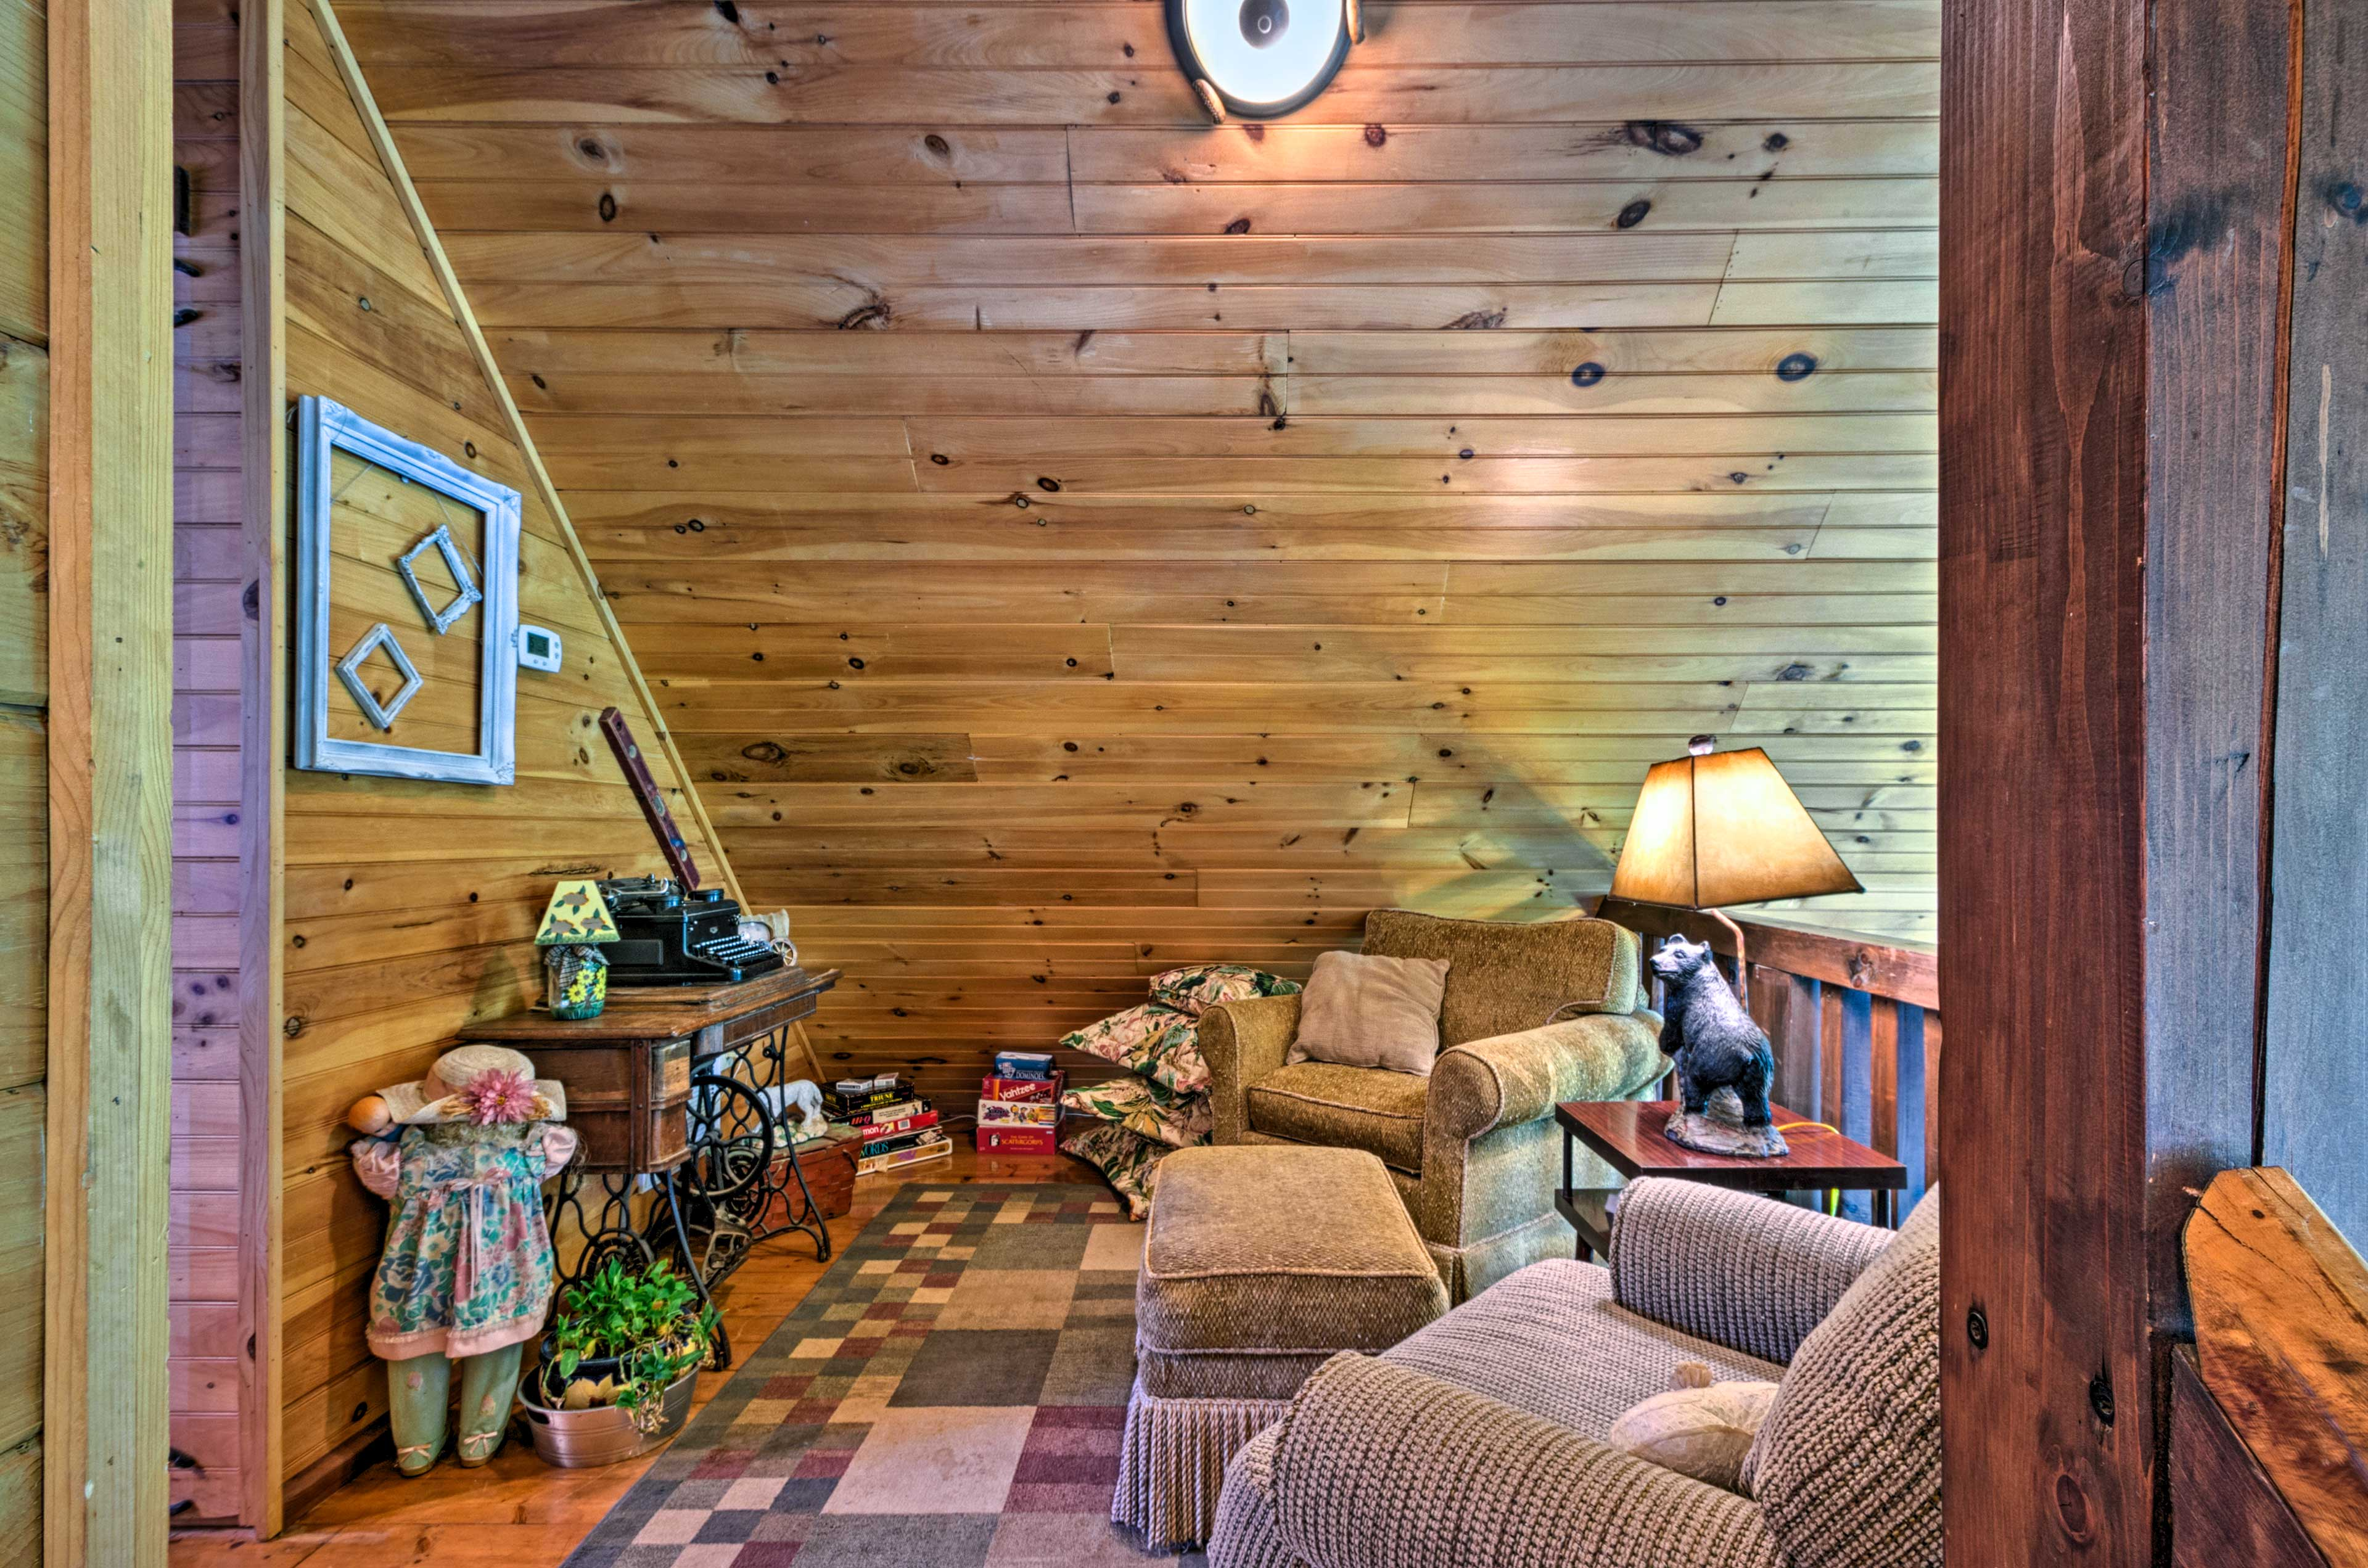 Curl up with a good book before bed upstairs on the landing.